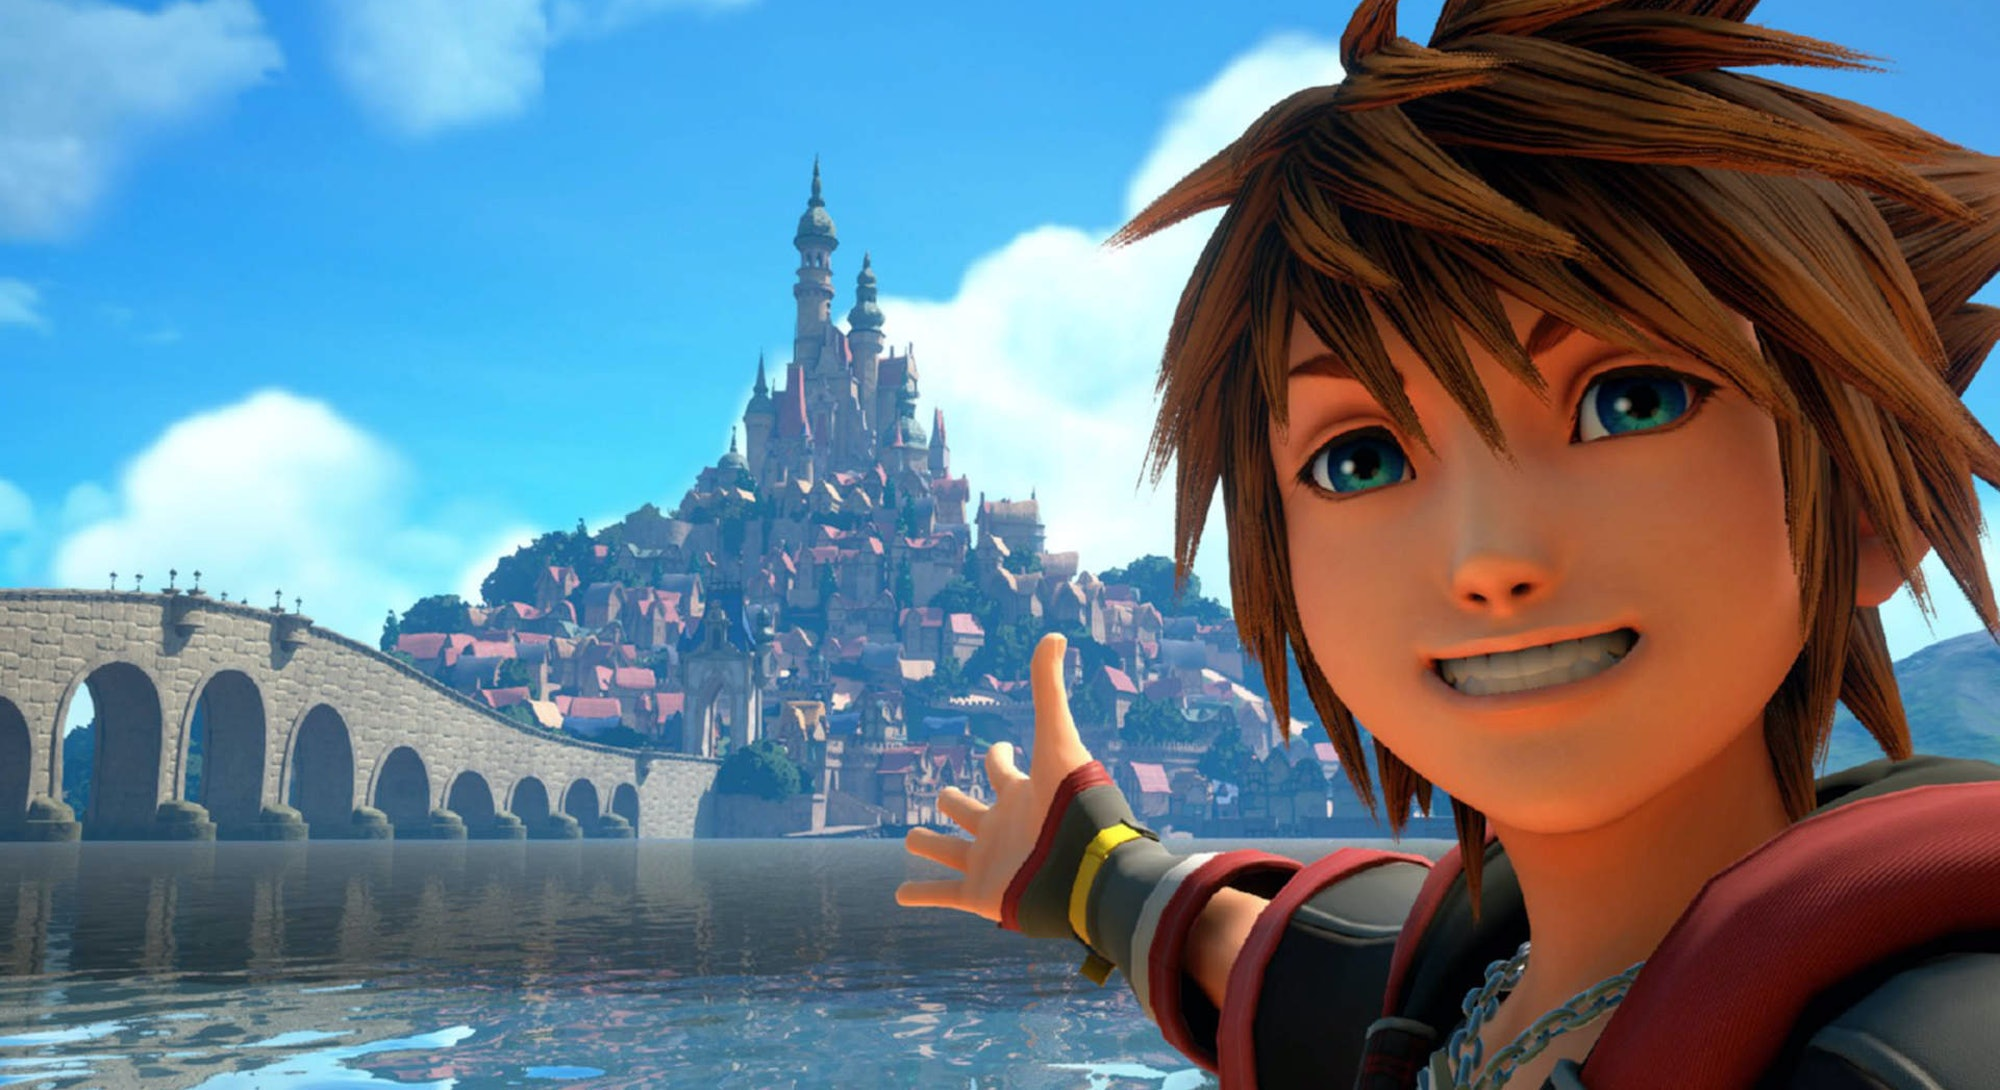 Sora taking a selfie.